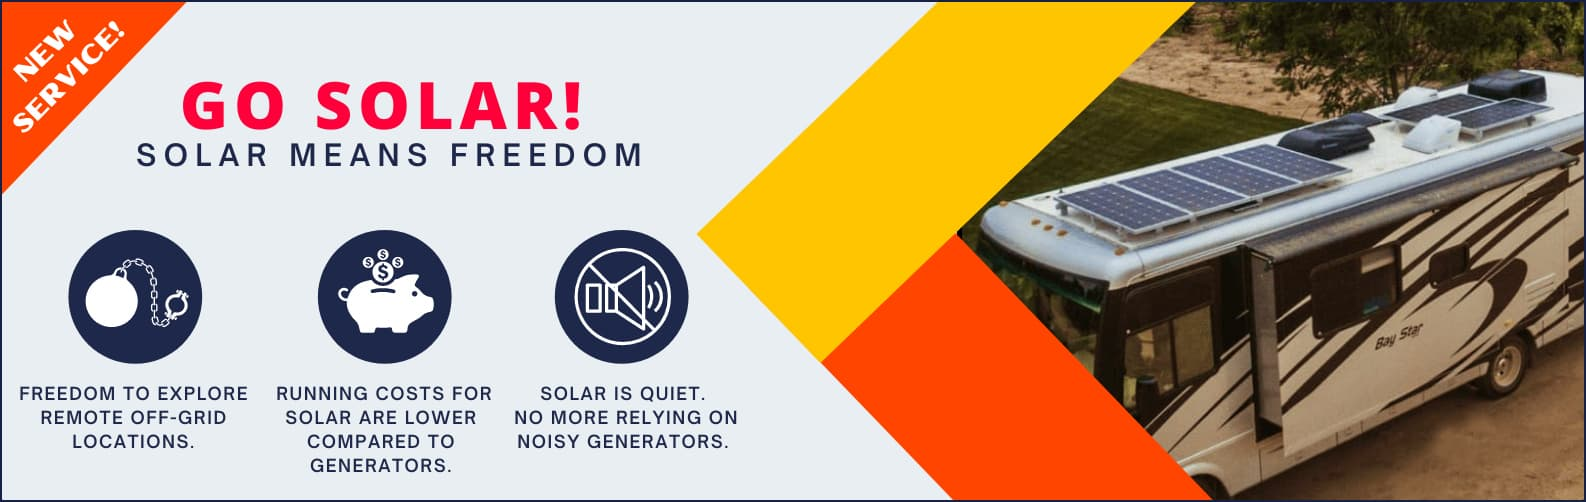 rv with solar panels on top and 3 benefits listed for going rv solar